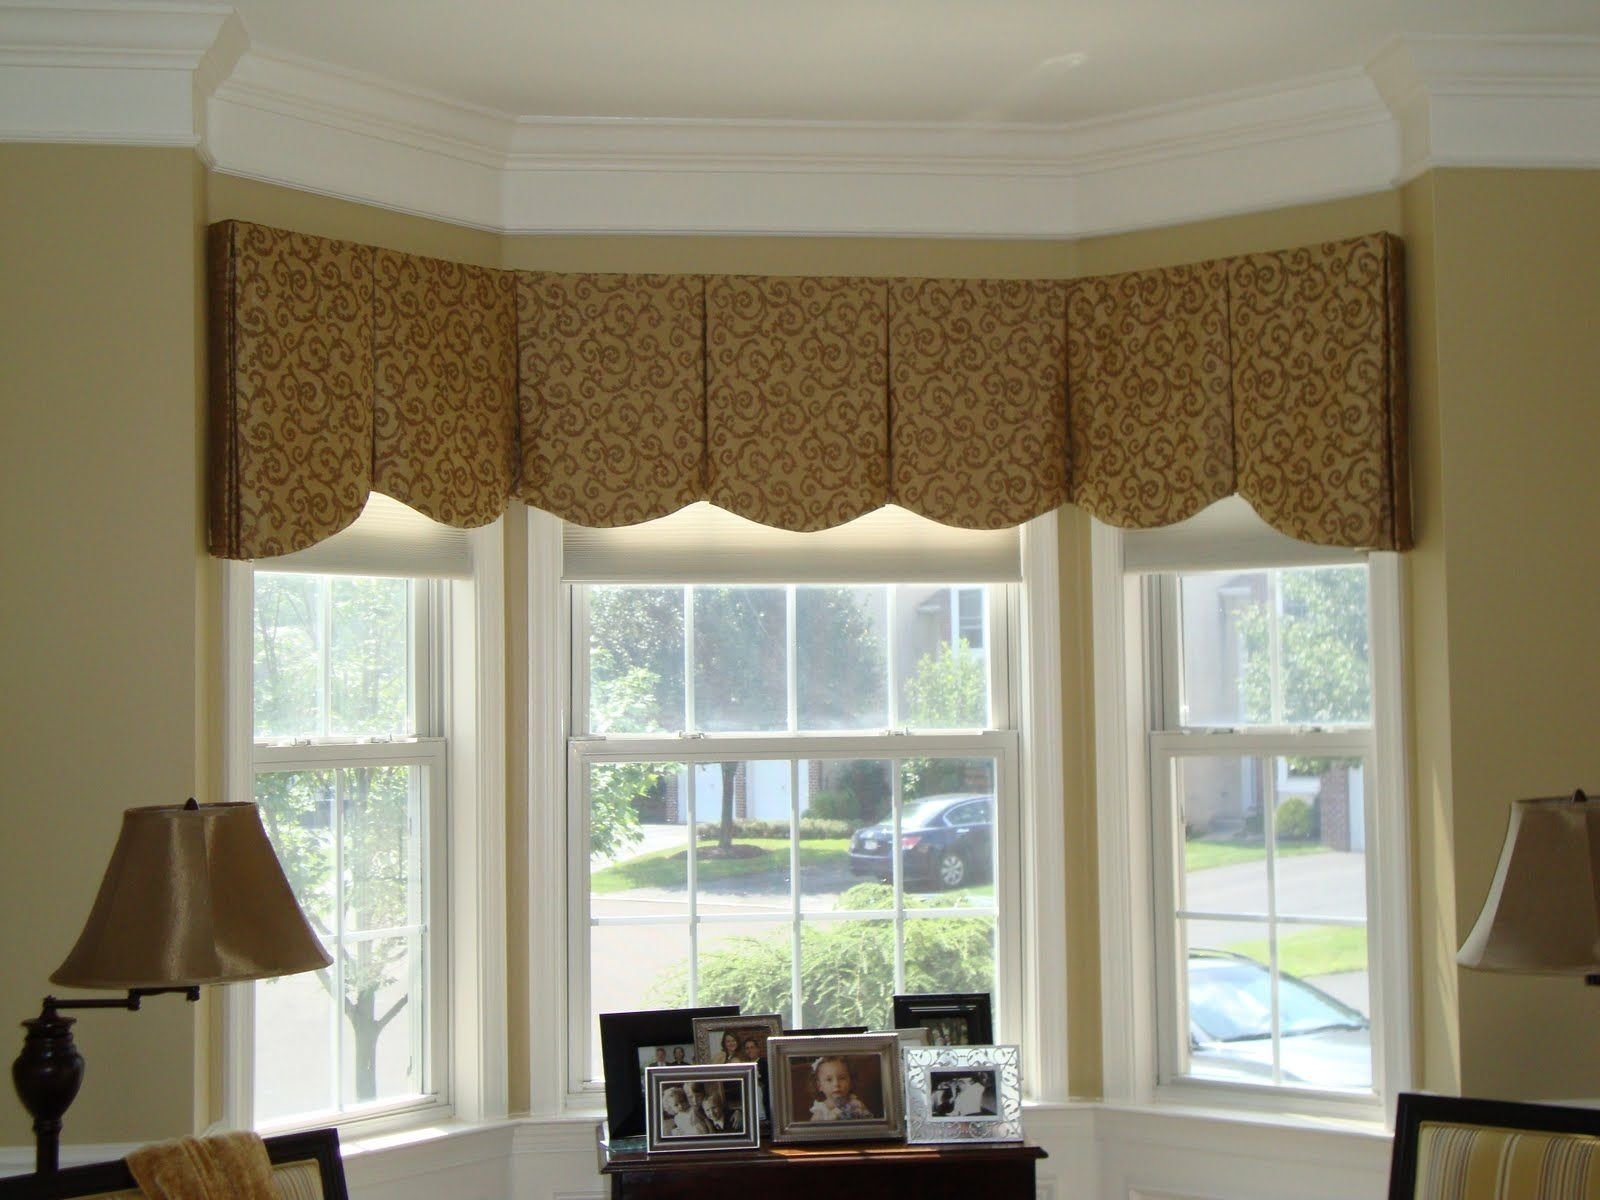 10 Wonderful Bay Window Treatment Ideas Pictures best window treatment ideas fashion designs and more pic for 1 2020